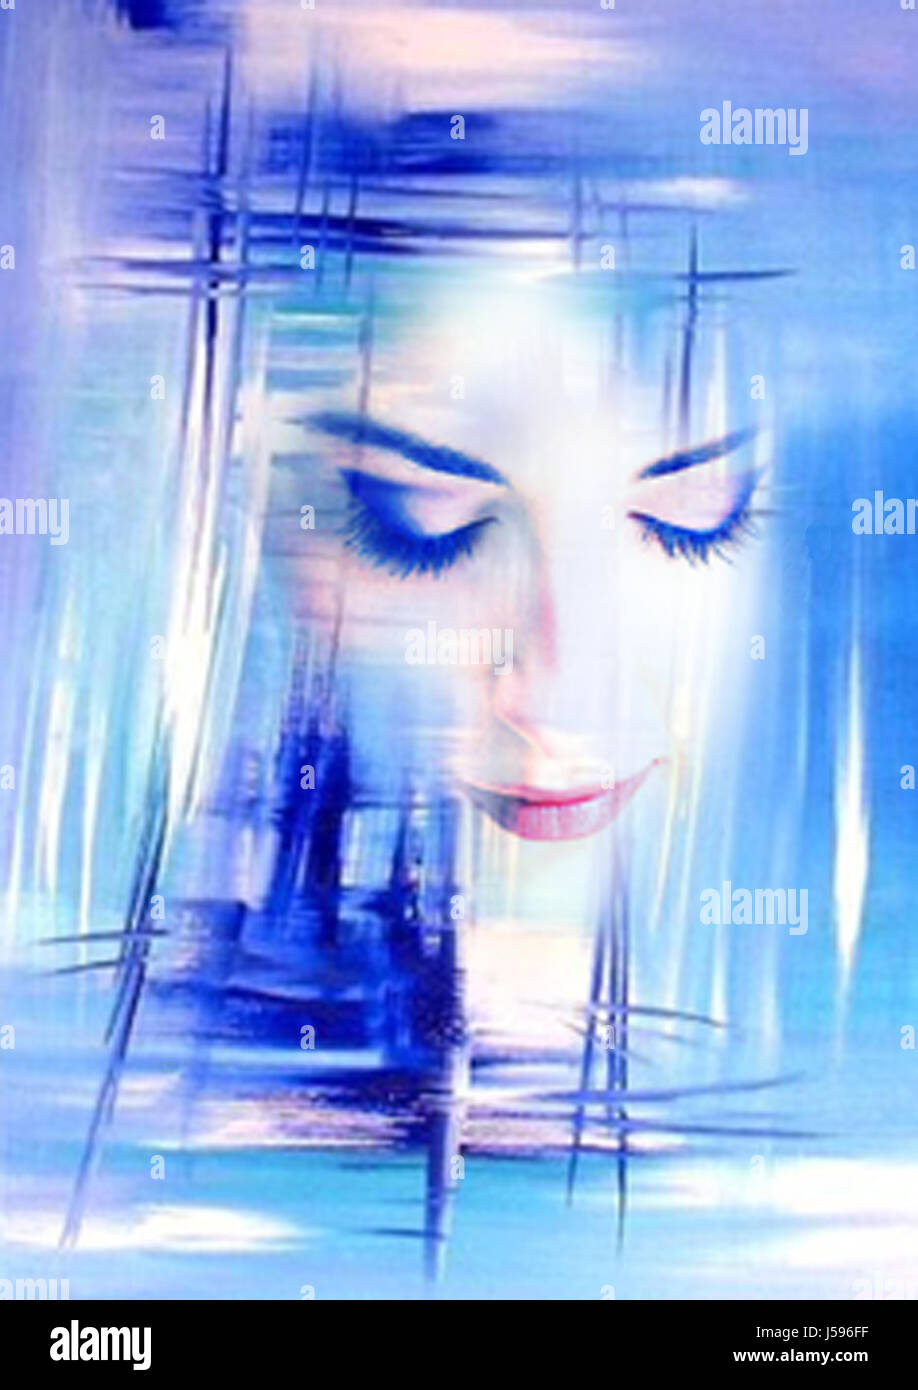 woman blue portrait painting abstract painted photo picture image copy Stock Photo